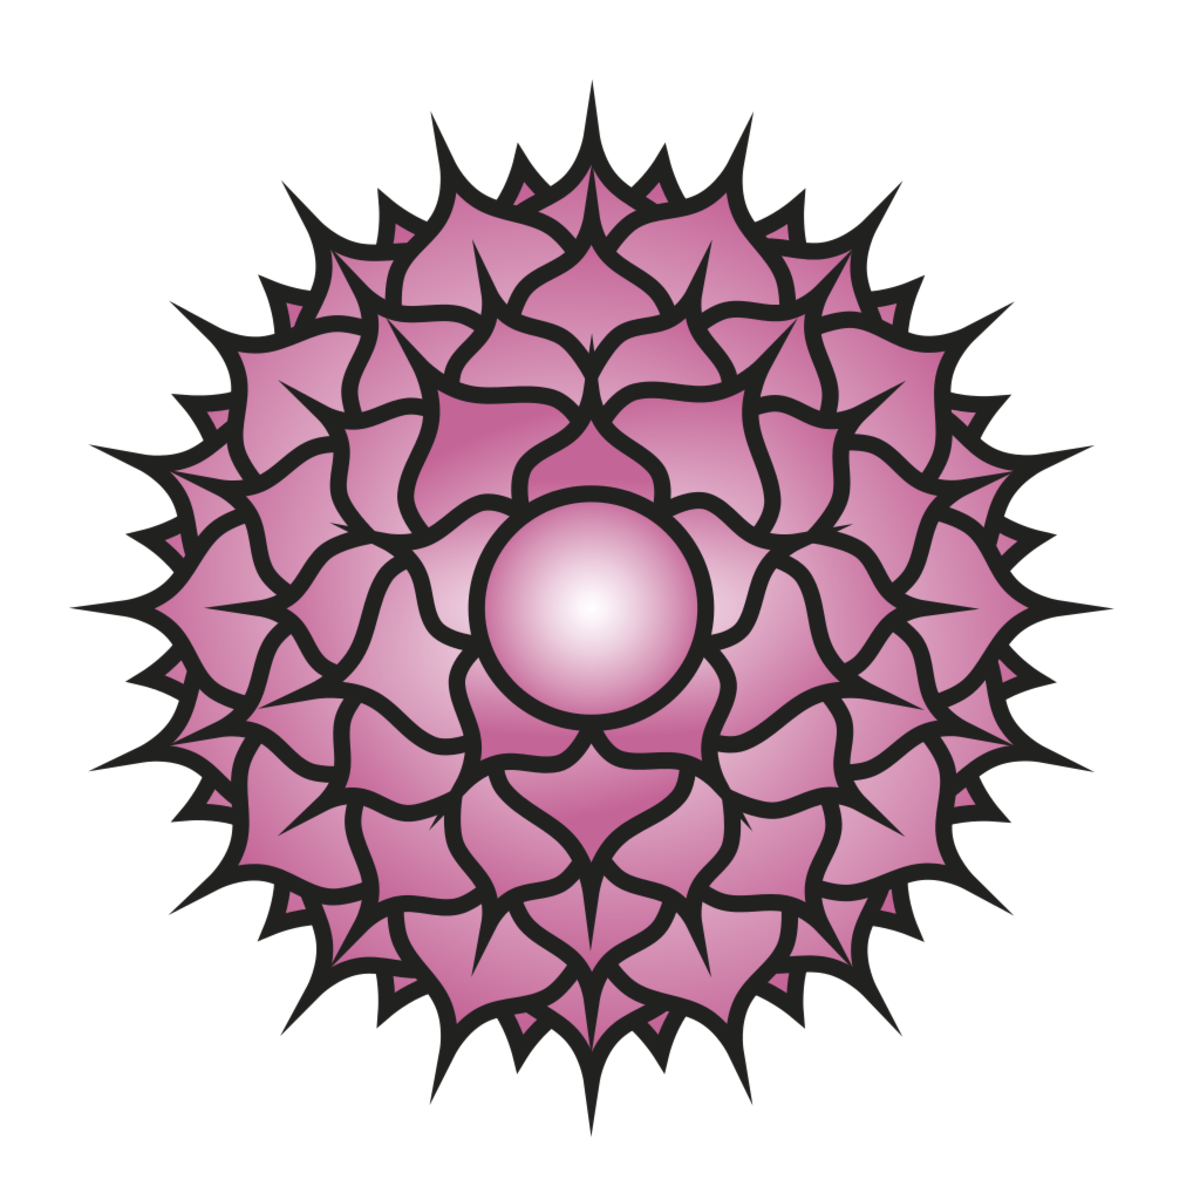 The crown chakra is related to purple or white.